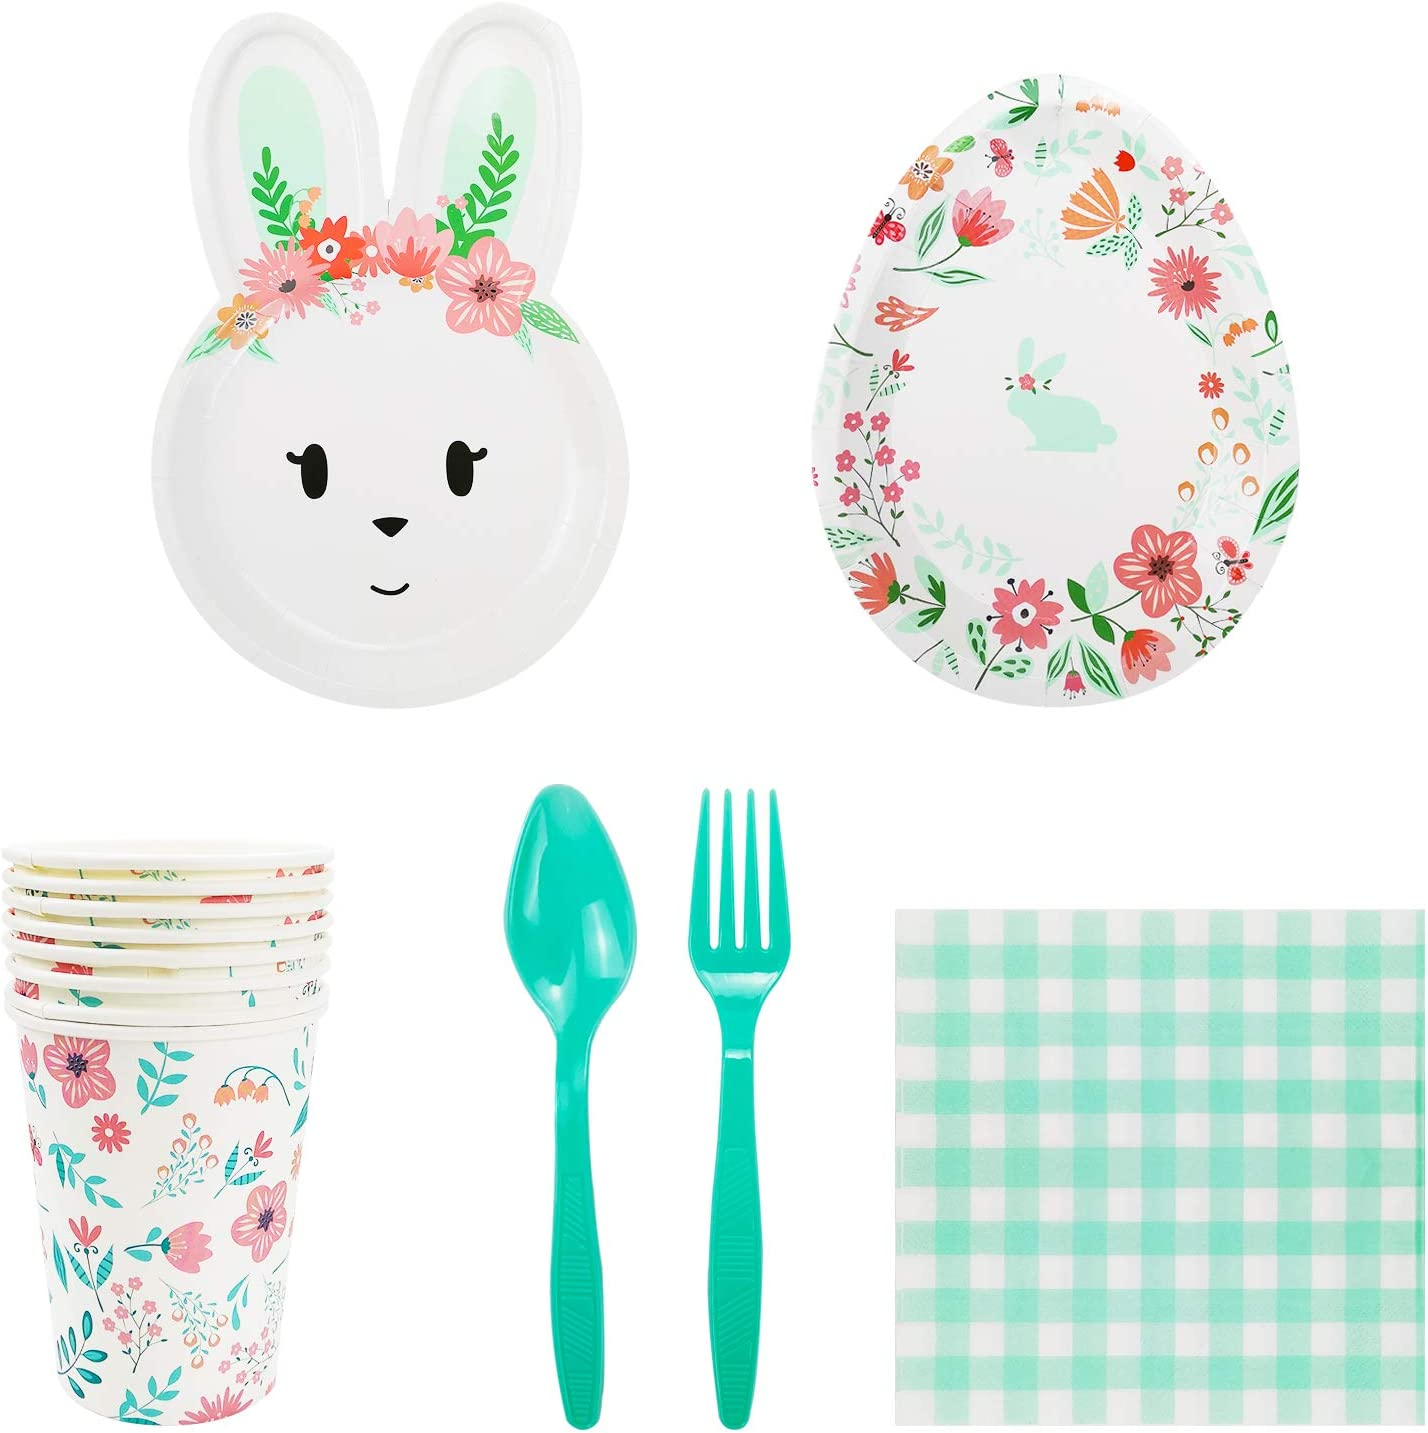 Spoons Egg Shape Dinner /& Dessert Plates Forks -60 Pieces Birthday Easter Party Decorations Rabbit Face Shaped Paper Plates Cups Mint Bunny Party Supplies for 8 Guests Napkins